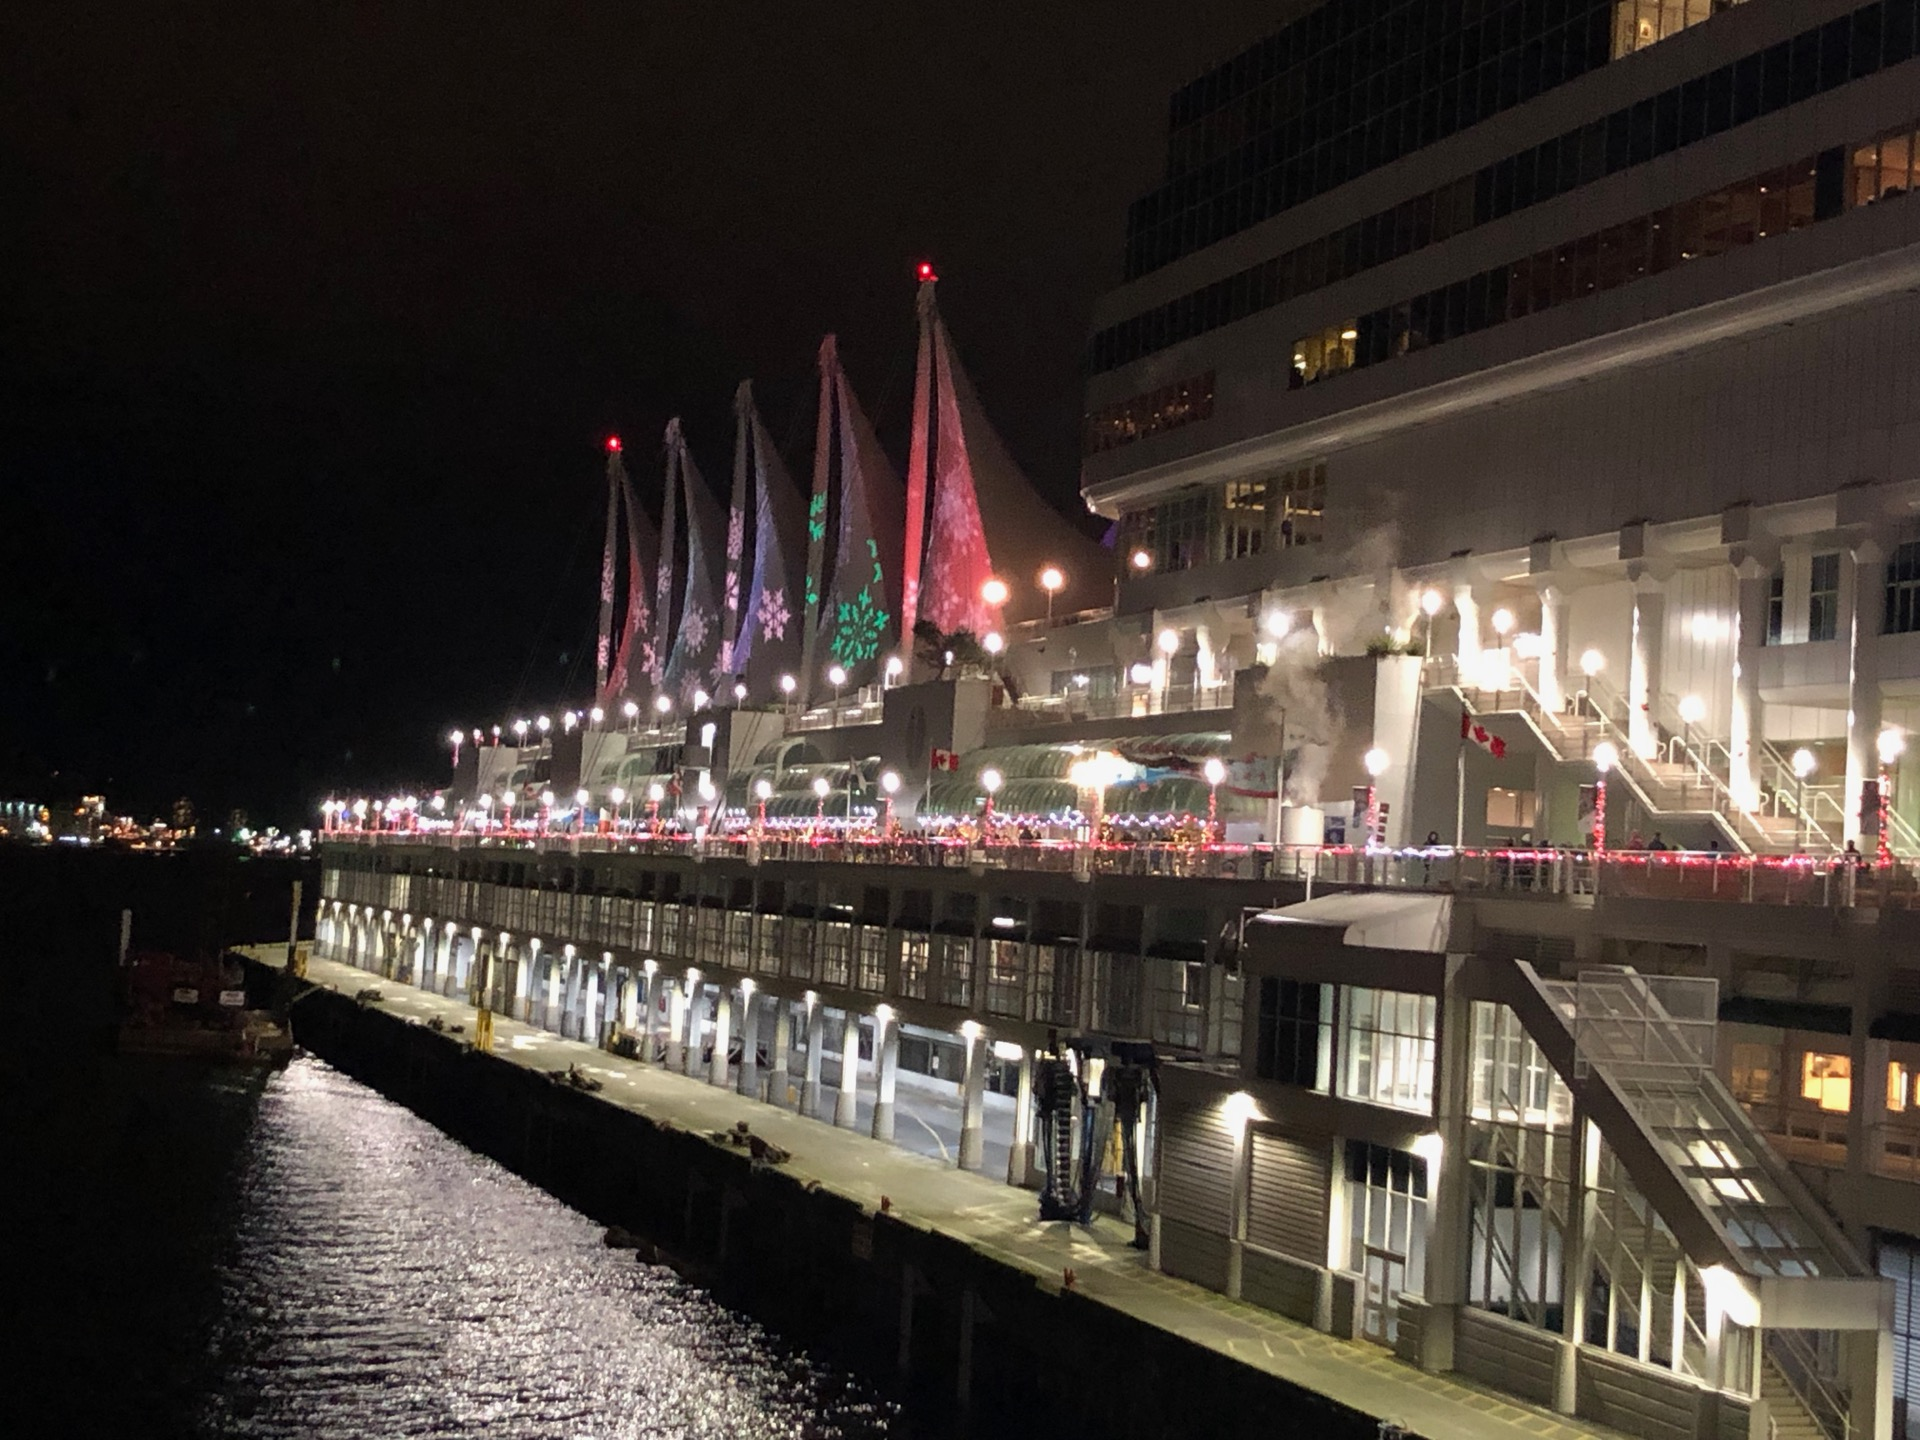 Canada Place all lit up